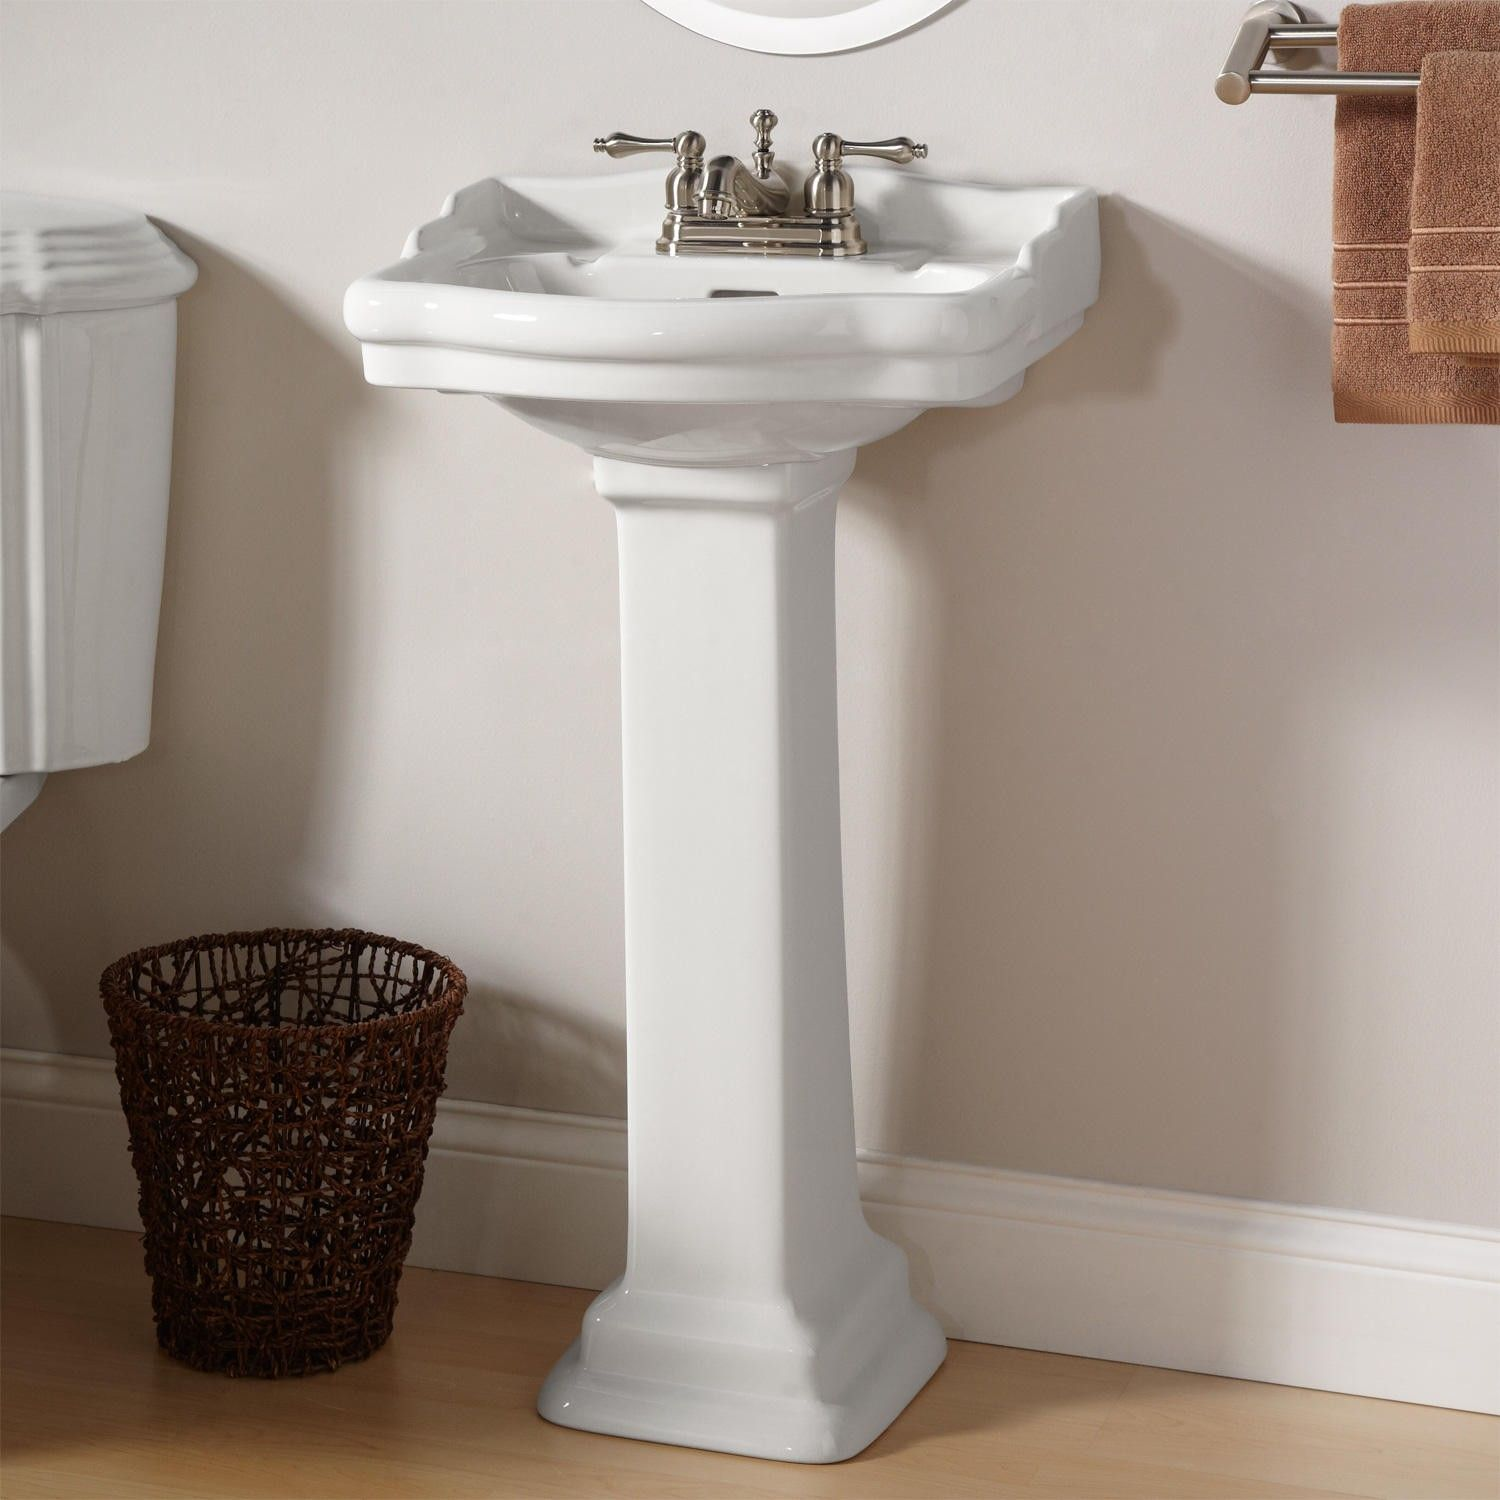 Stanford Mini Pedestal Sink The Bathroom In Our Tiny House Is